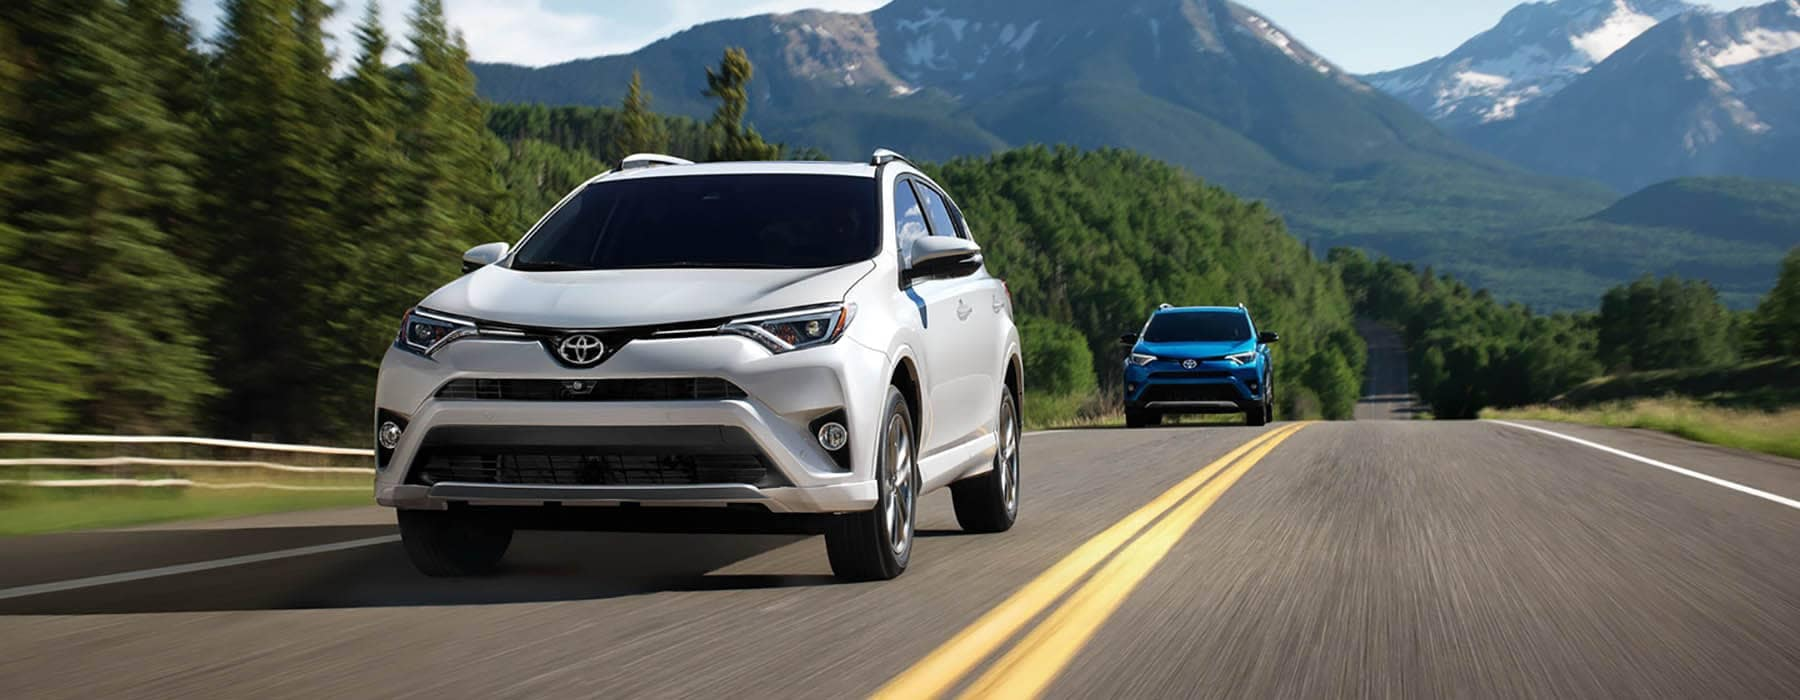 2018 Toyota RAV4 models driving through the mountains